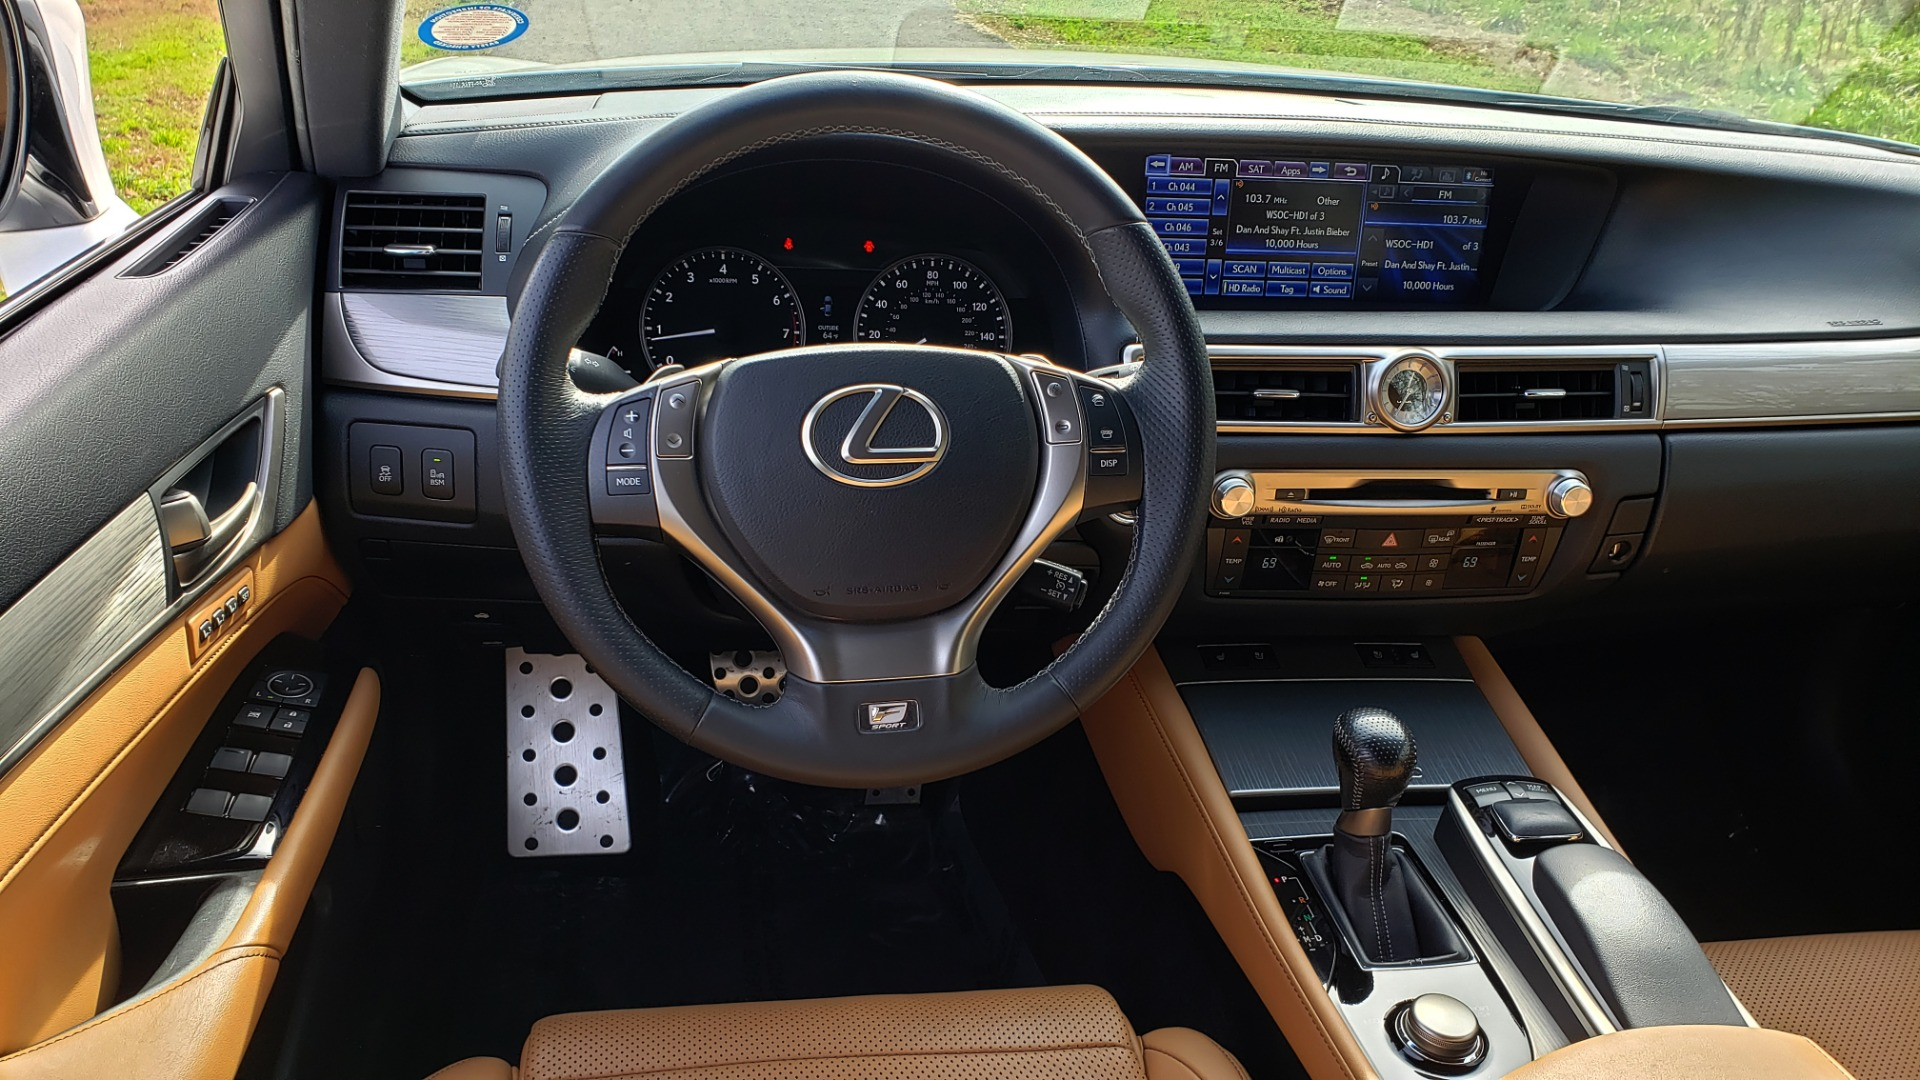 Used 2013 Lexus GS 350 F-SPORT / NAV / SUNROOF / BSM / PRK ASST / REARVIEW for sale Sold at Formula Imports in Charlotte NC 28227 34